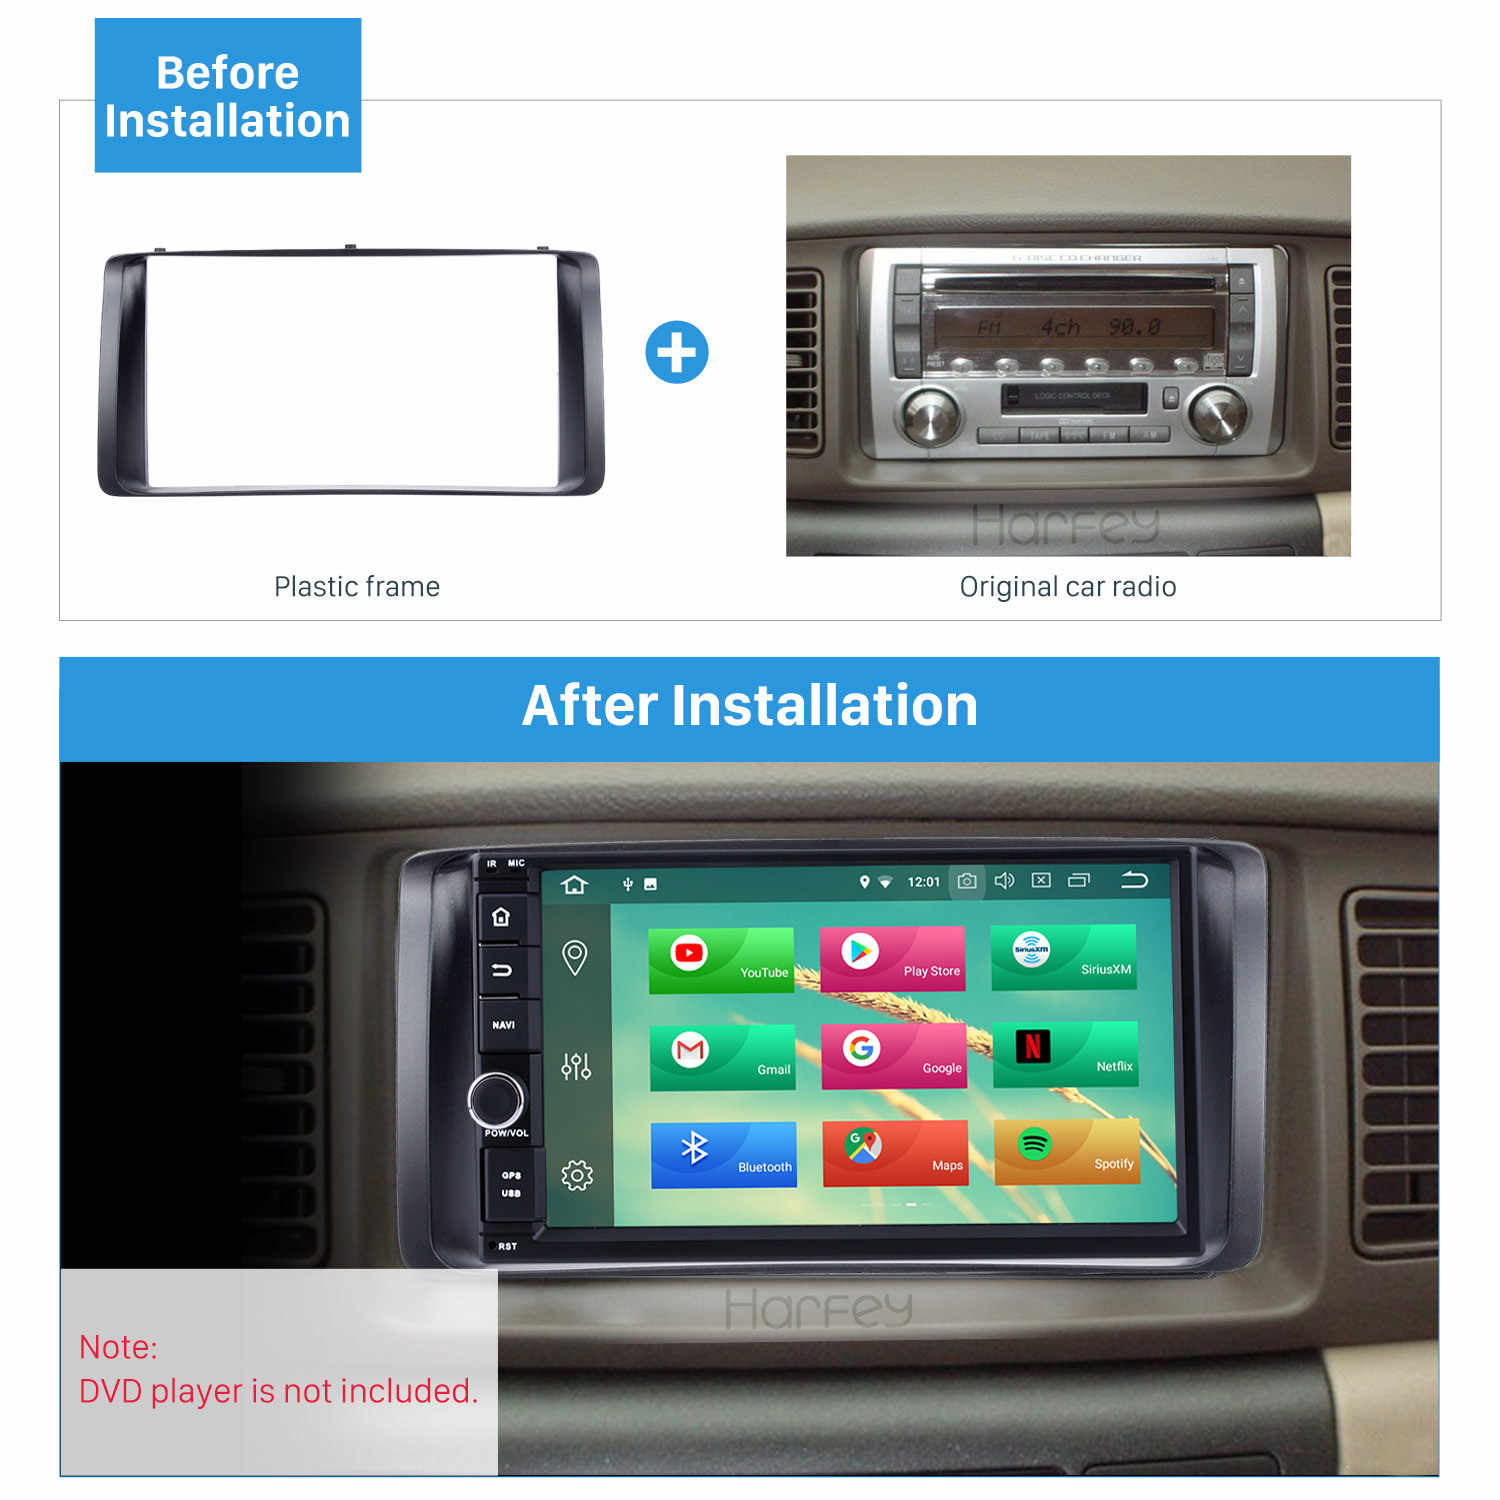 Harfey 178*100mm Car Radio Fascia Stereo Frame for 2003-2006 Toyota Corolla DVD Player Install Surround Trim Panel Kit Refit